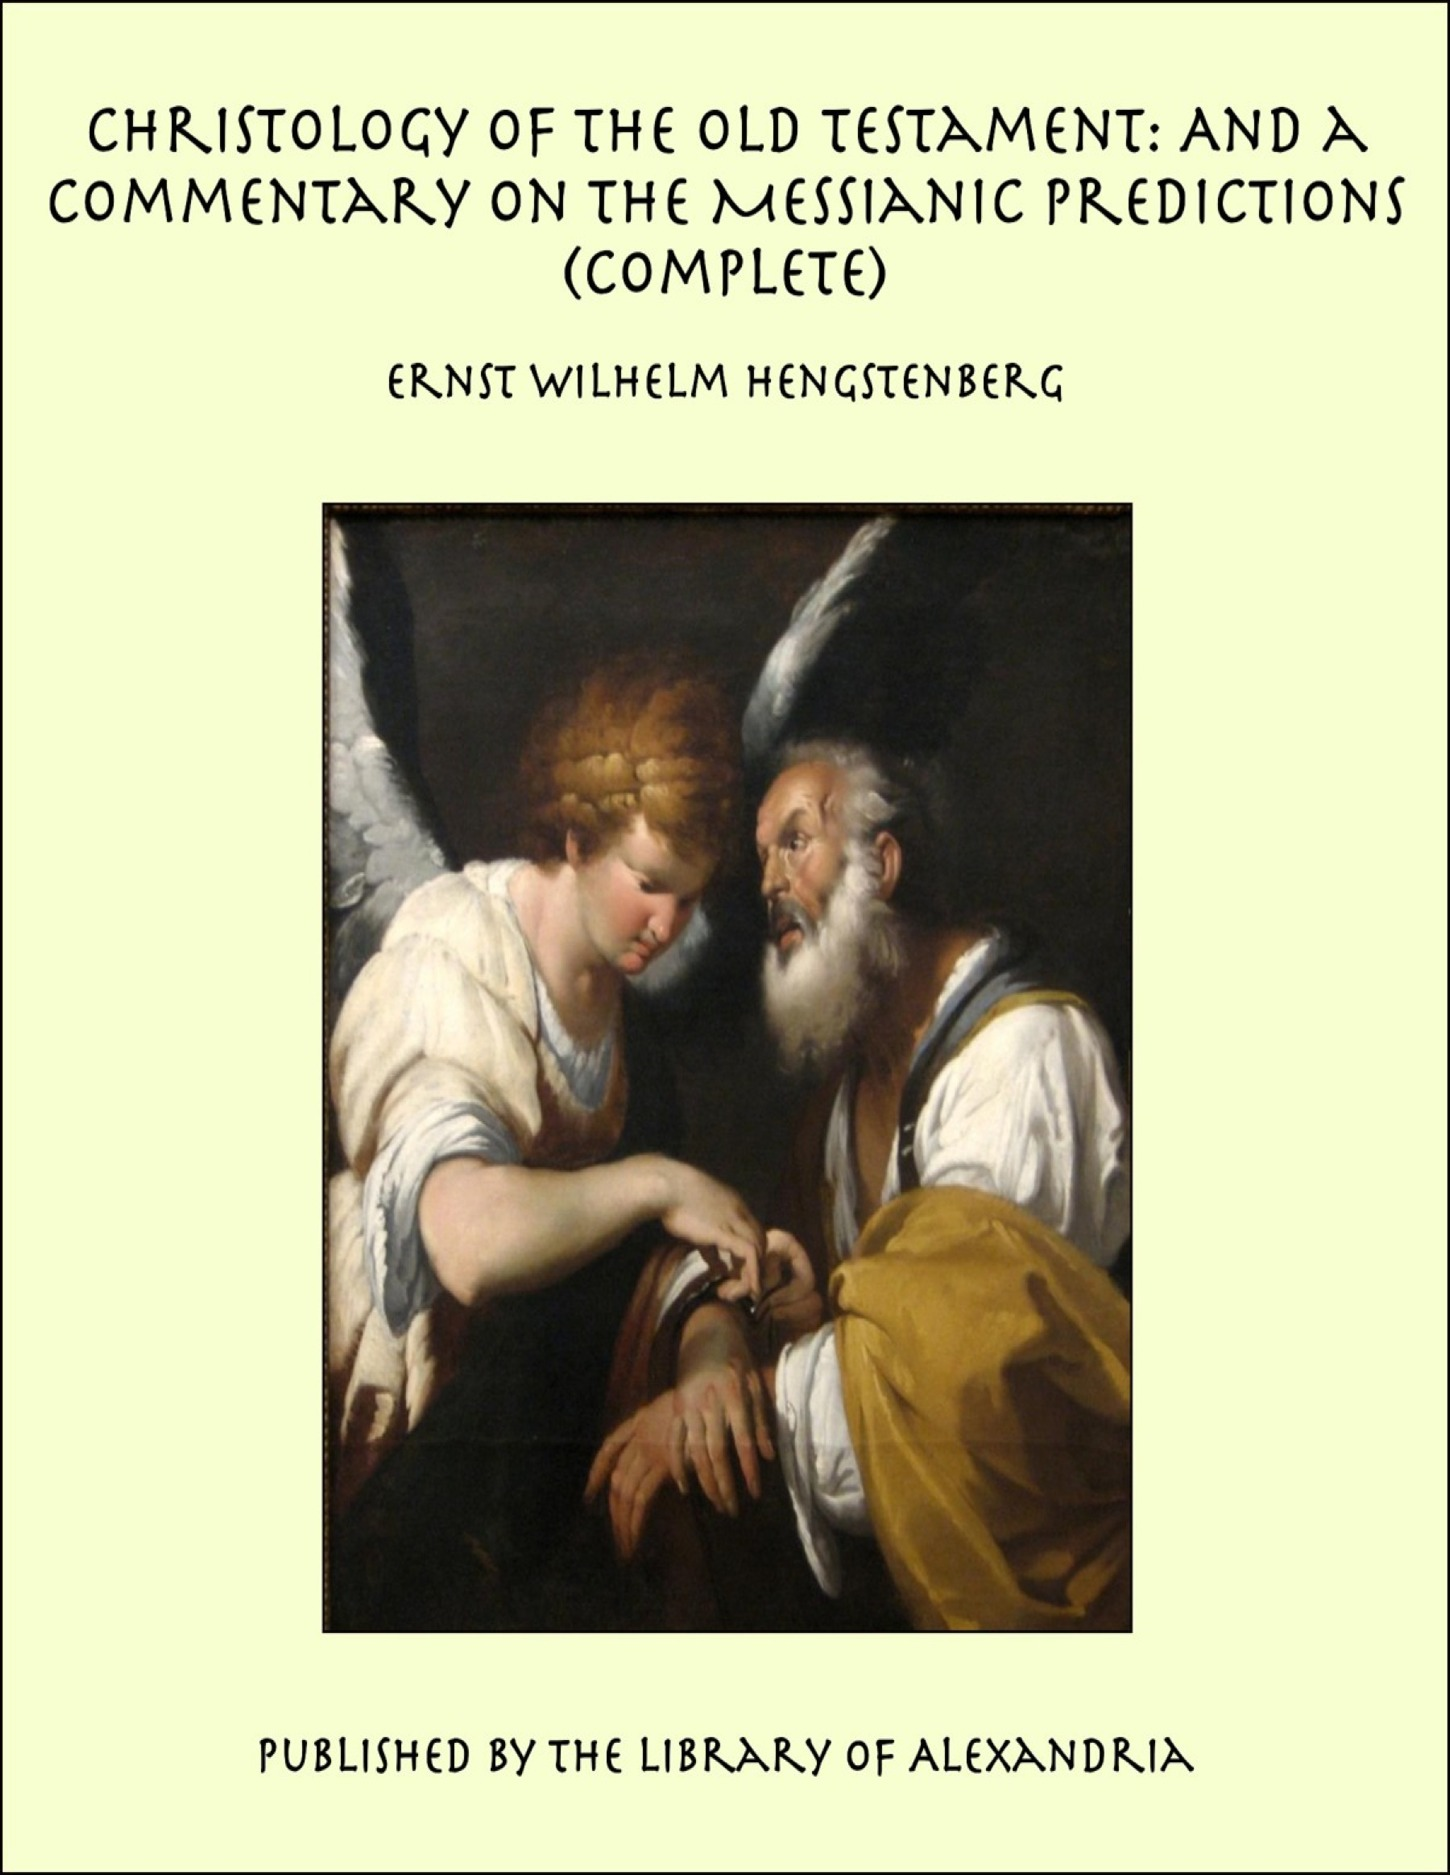 Christology of the Old Testament: And a Commentary on the Messianic Predictions (Complete) By: Ernst Wilhelm Hengstenberg